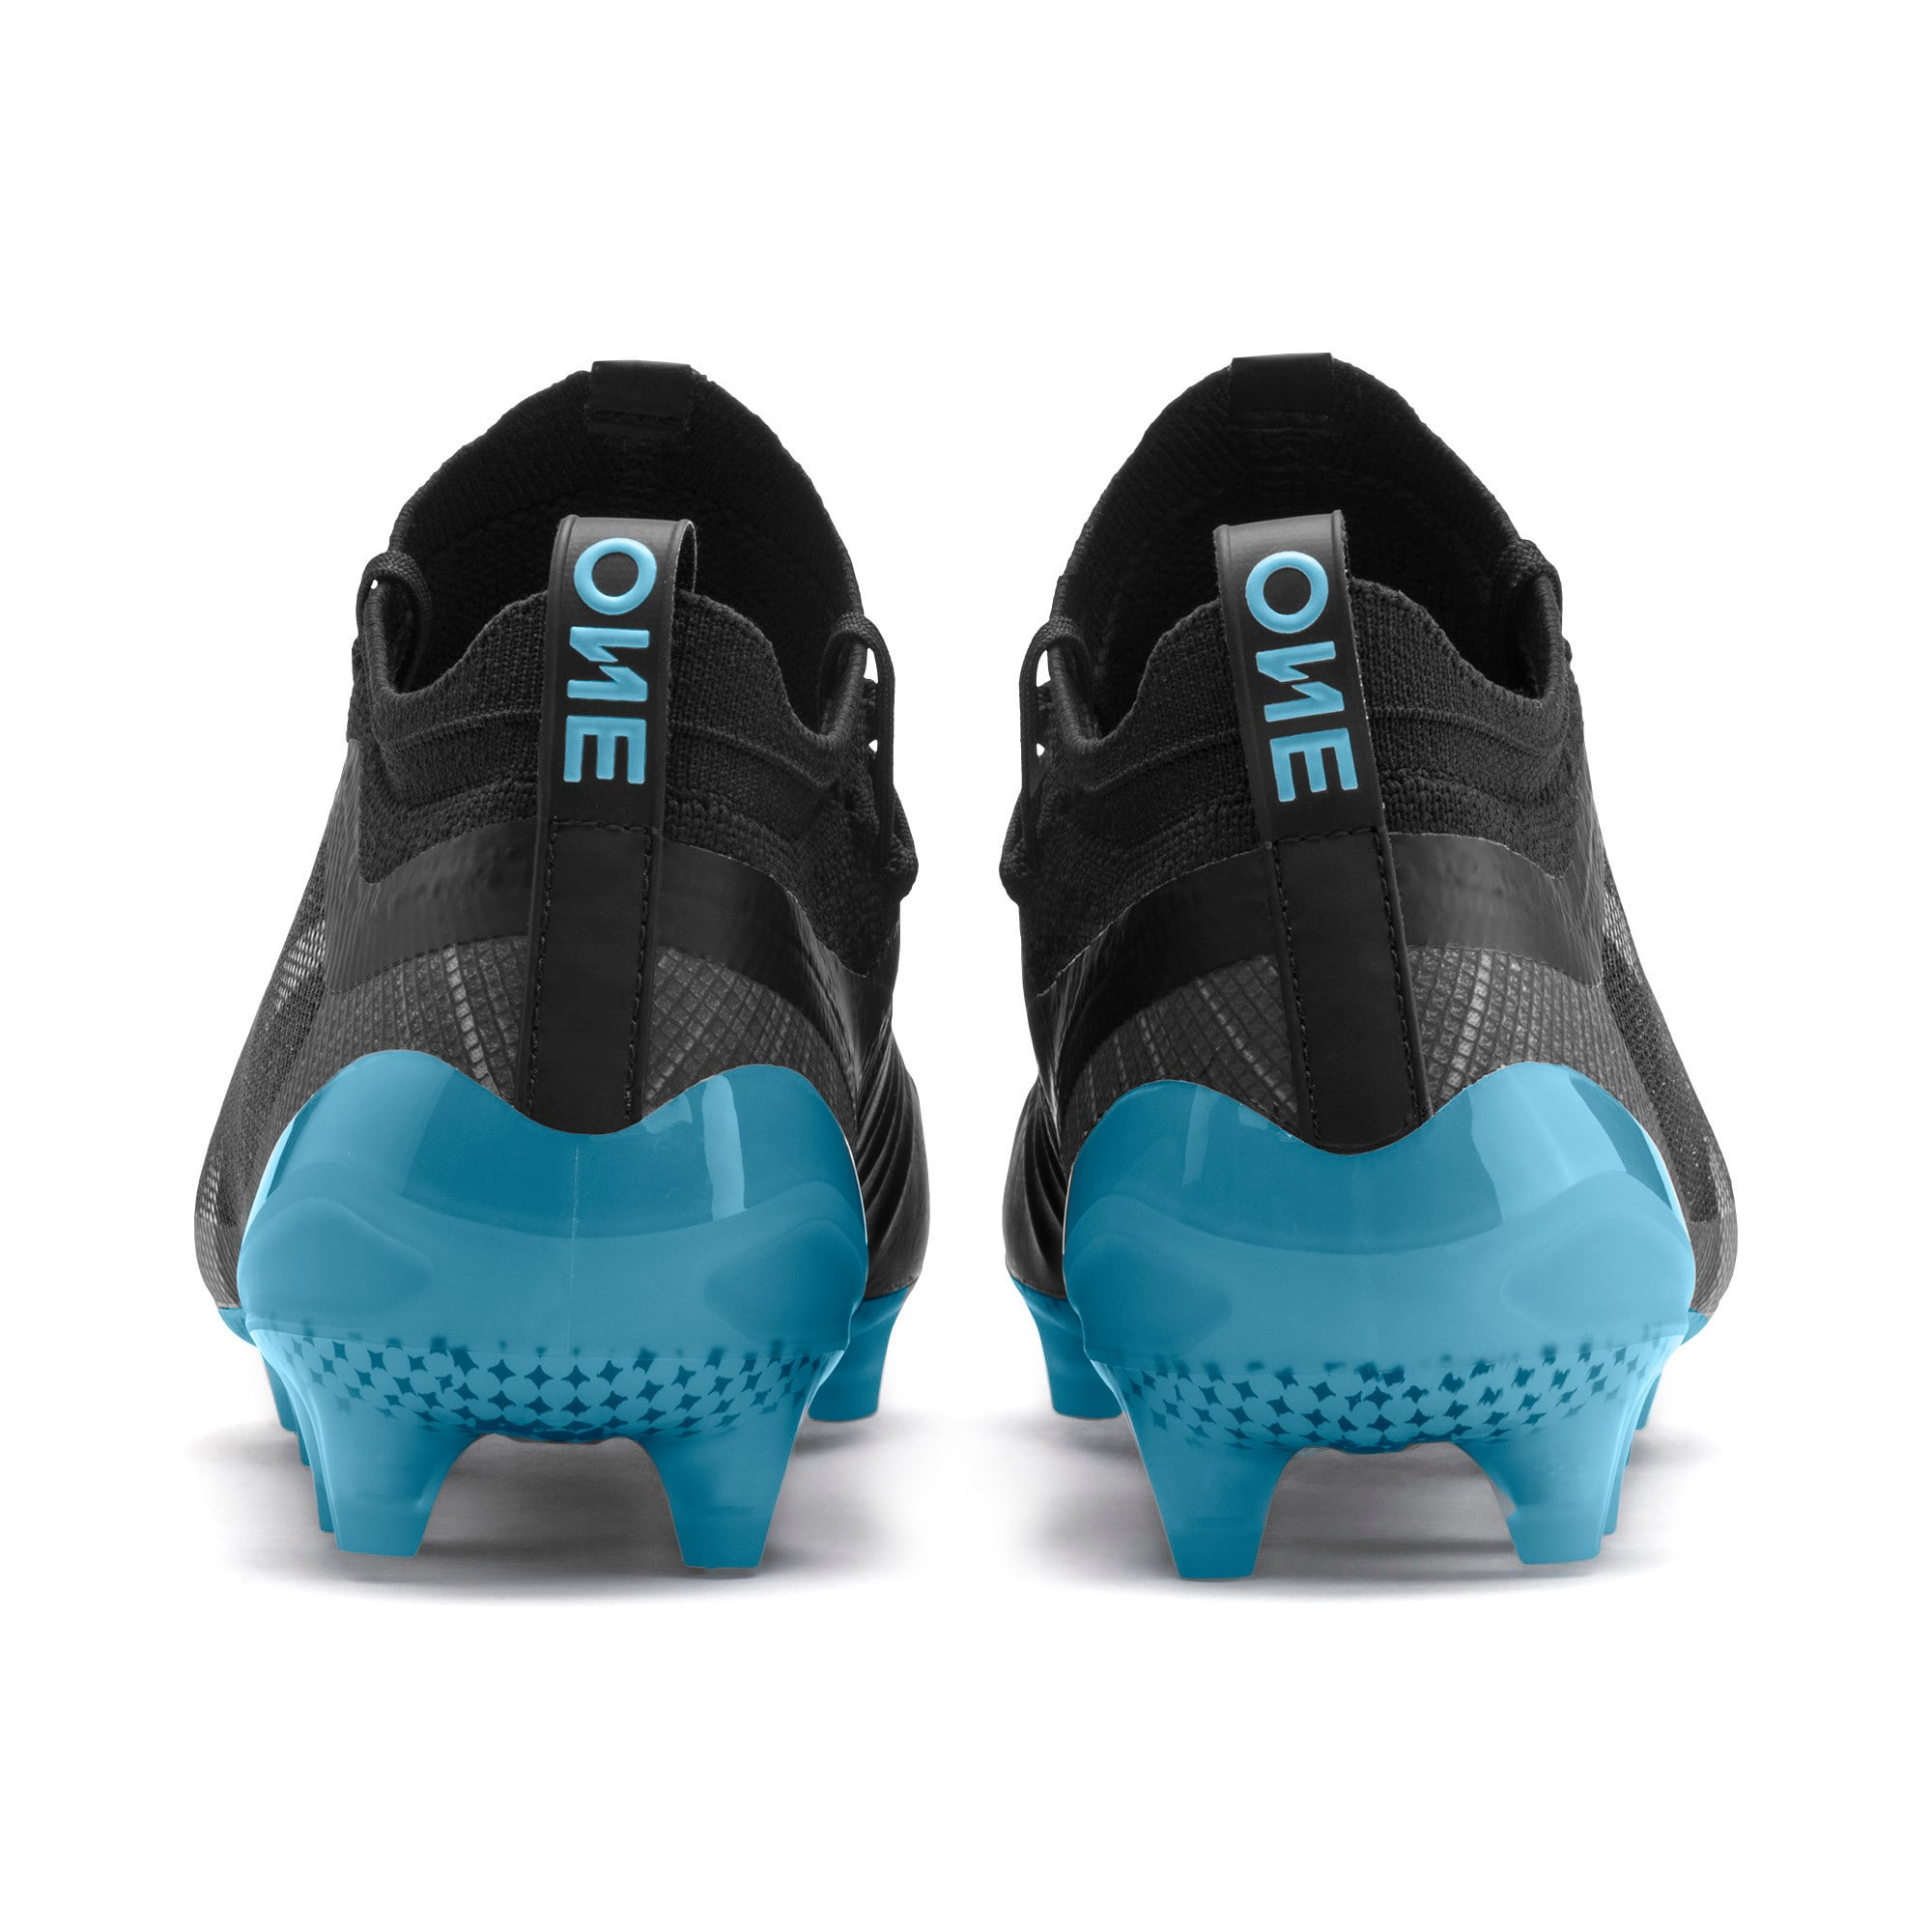 PUMA ONE 5.1 City Men's Football Boots, Black-Sky Blue-Silver, large